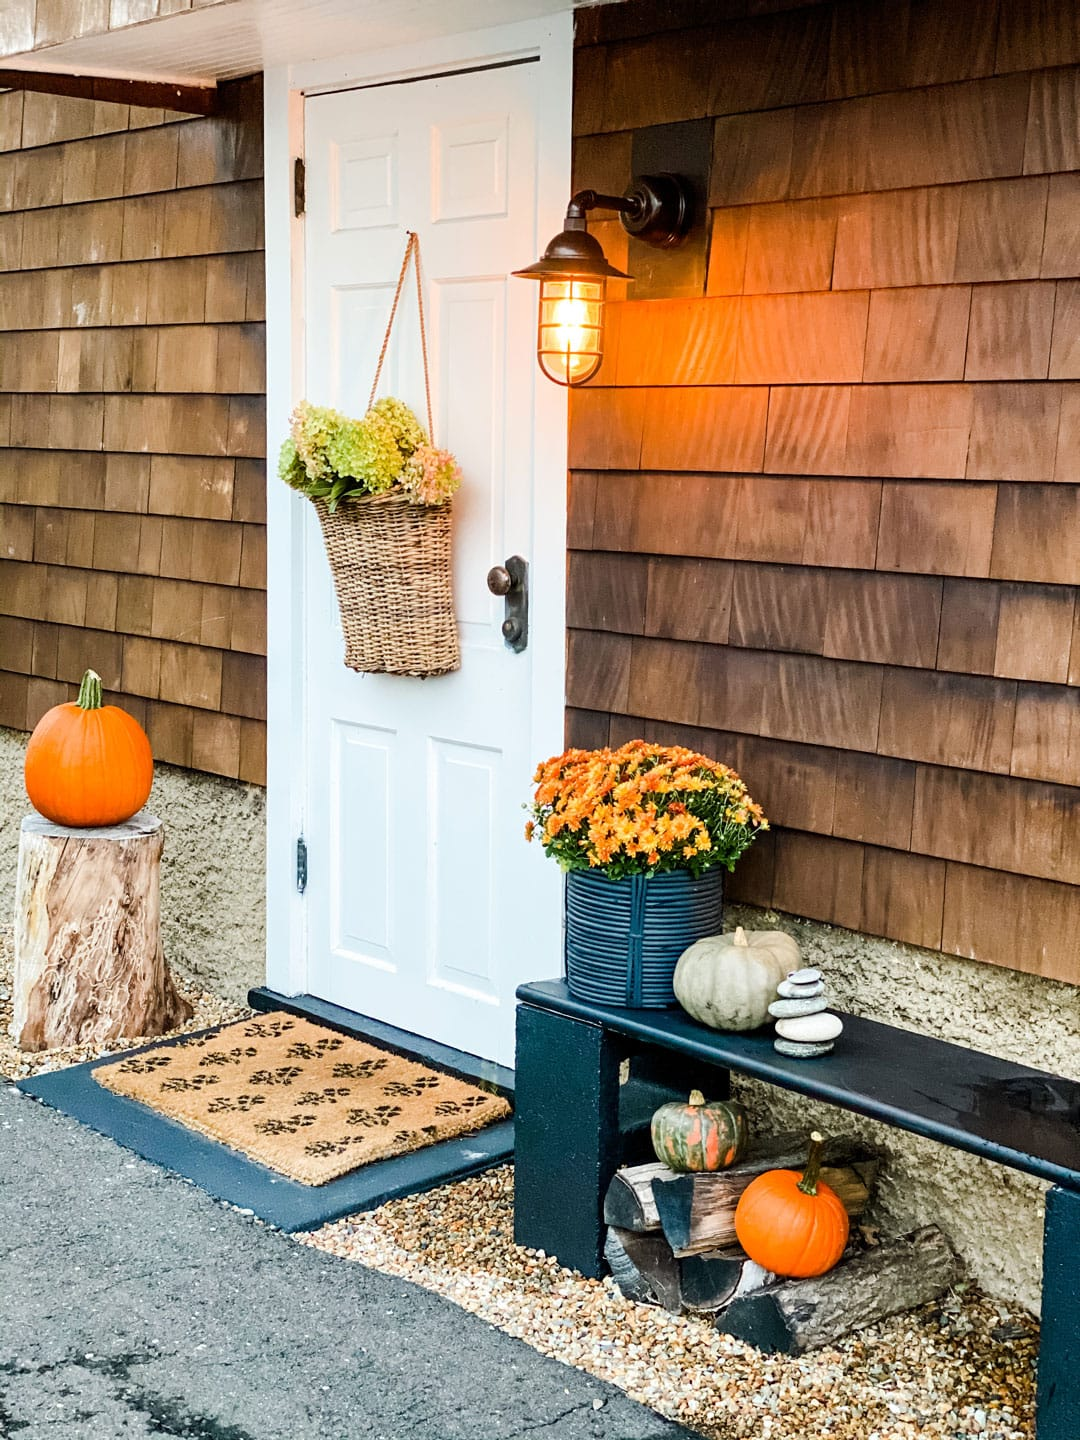 Lifestyle Blogger Annie Diamond shares her fall decor for her side door of her New England home.